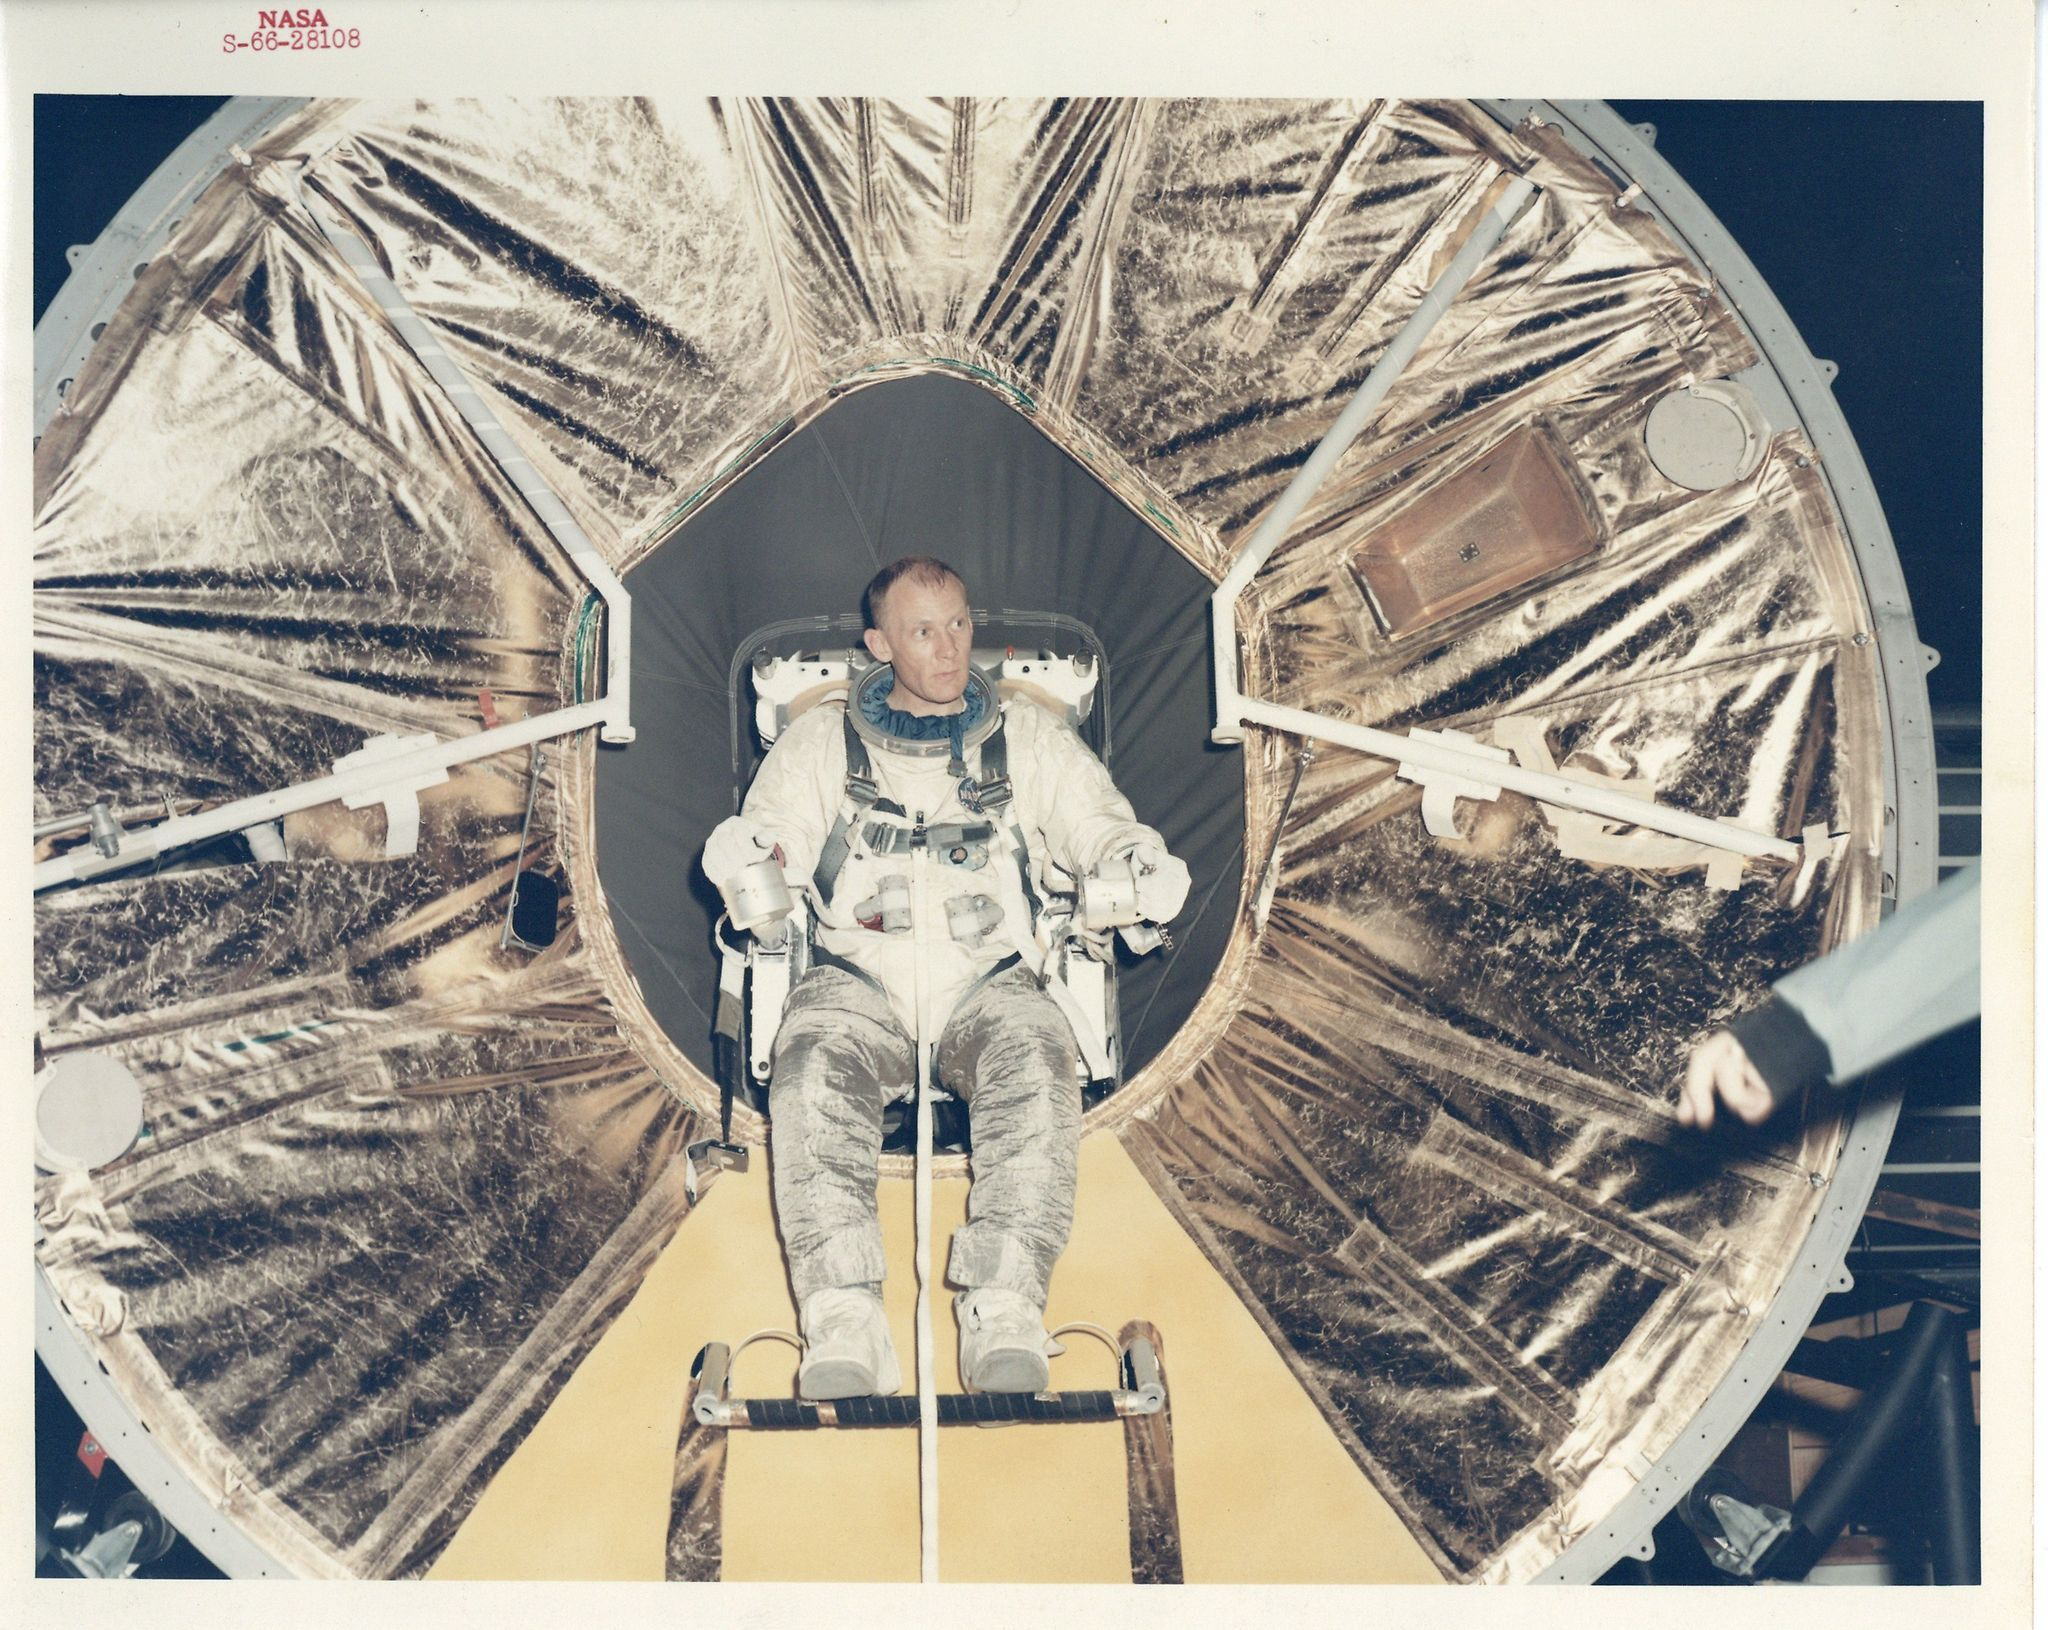 The Gemini 3 Space Mission And The Corned Beef Sandwich